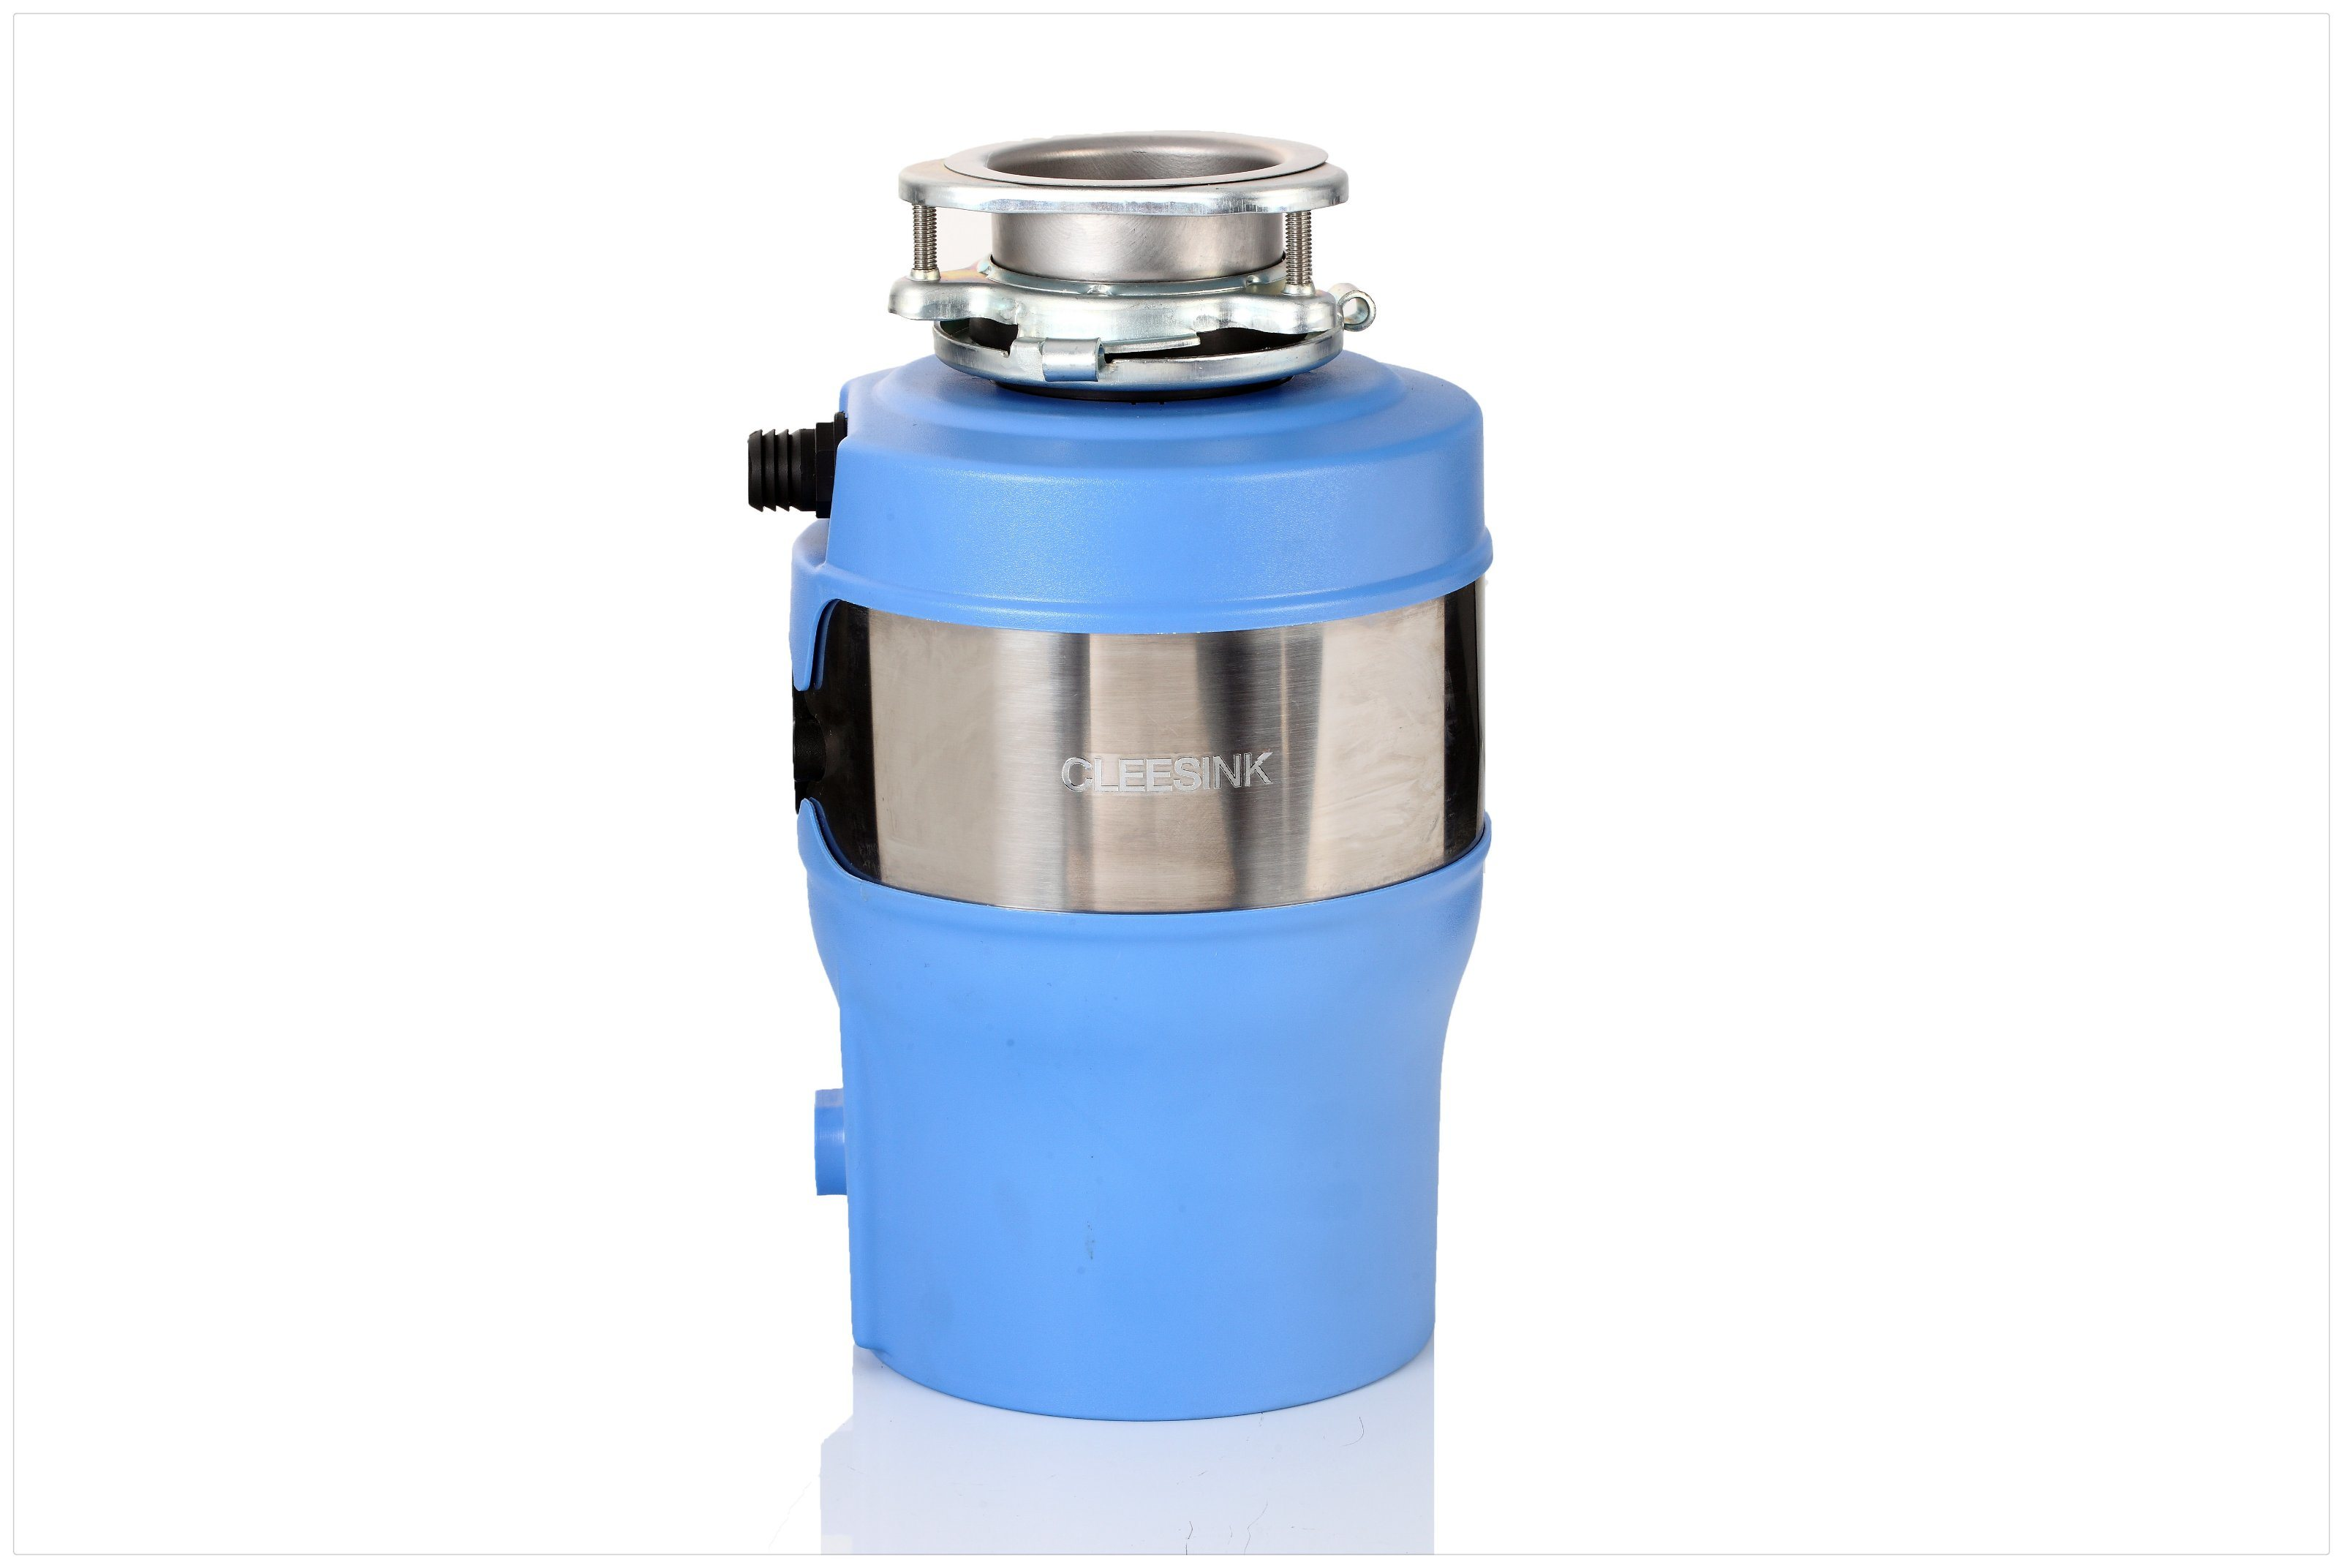 Hot Sale Food Waste Disposer Cleesink